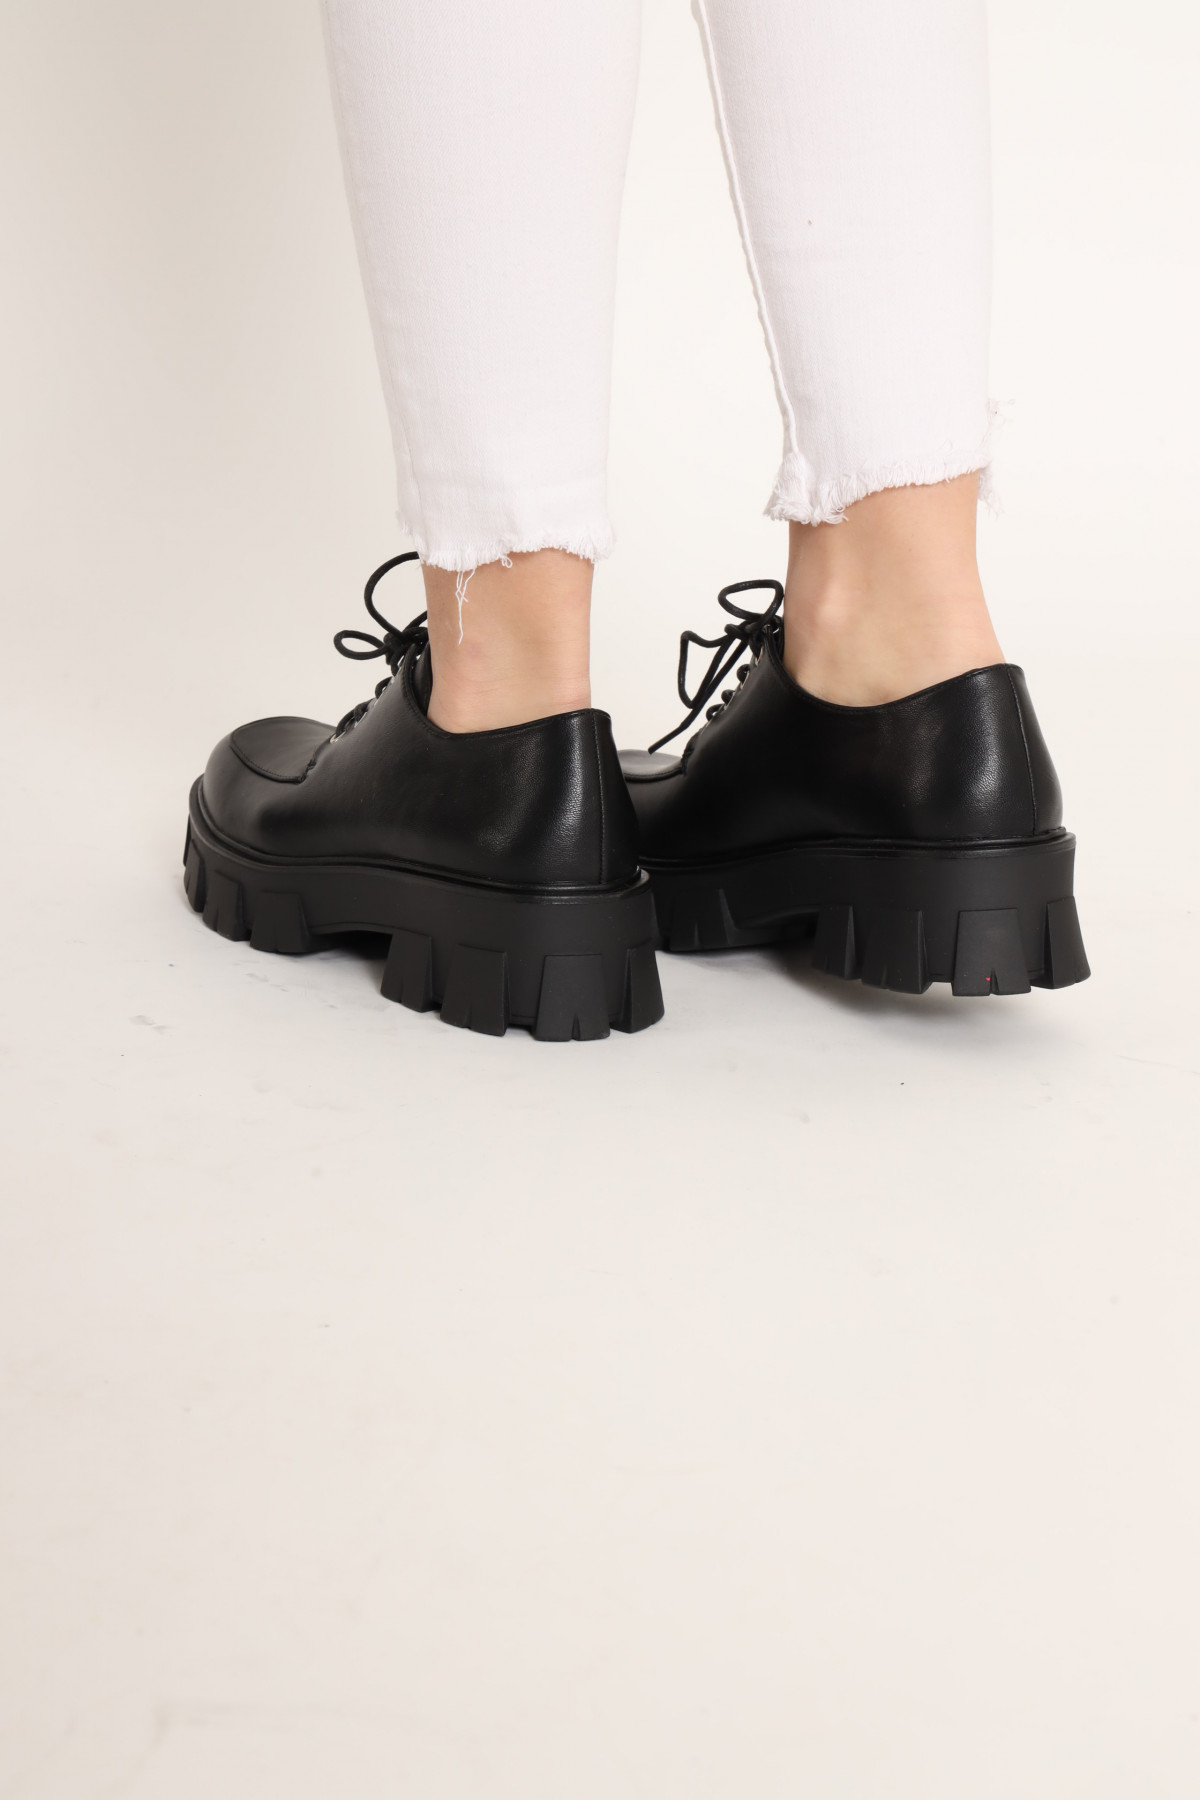 Lace-up shoe with double bottom